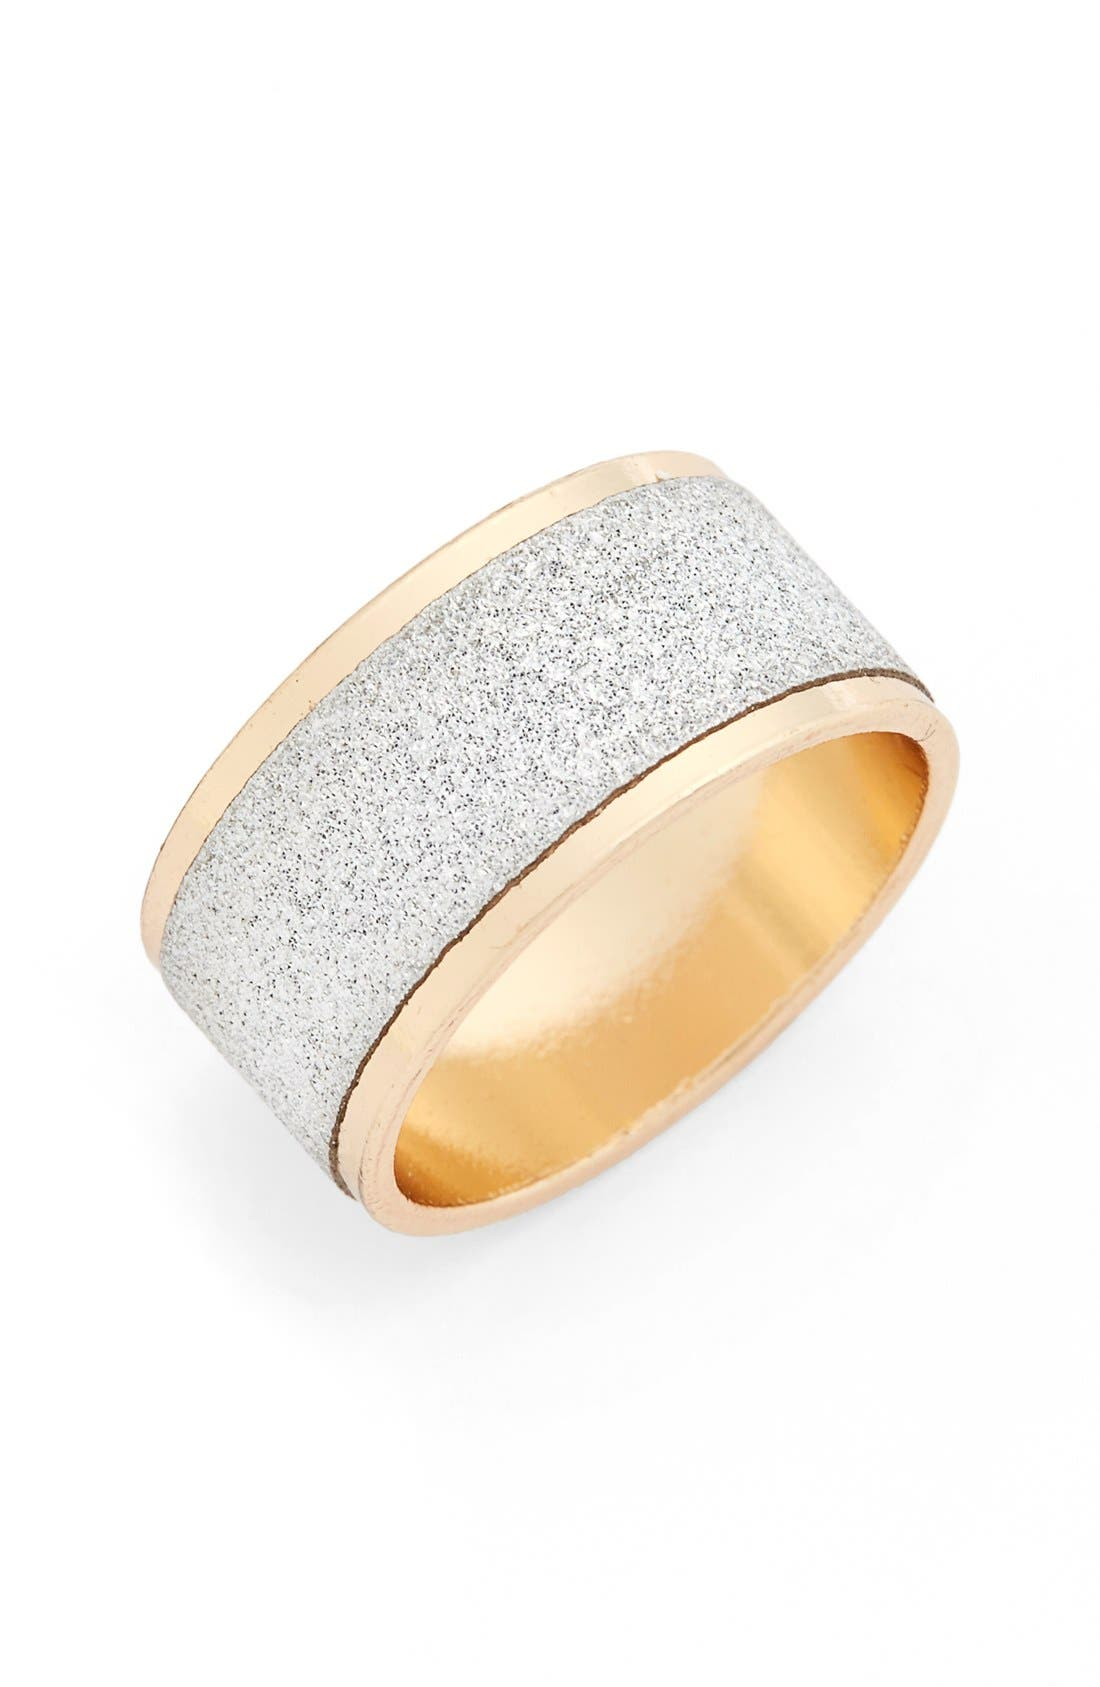 Main Image - Topshop Silver & Gold Glitter Ring